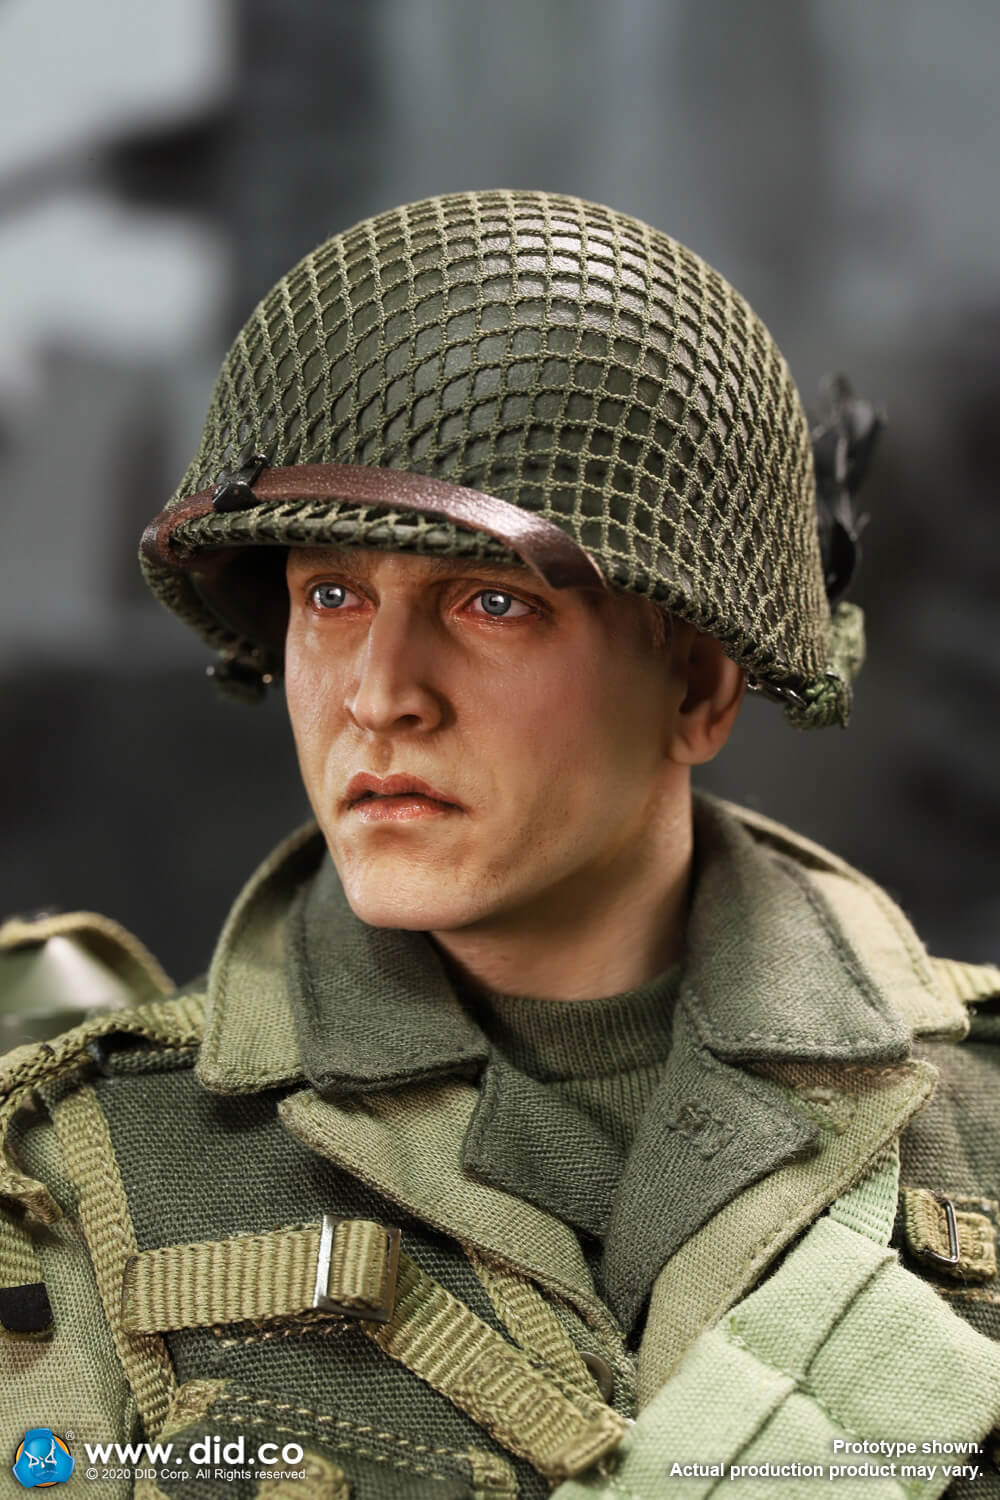 DiD - NEW PRODUCT: DiD: A80144 WWII US 2nd Ranger Battalion Series 4 Private Jackson 14242